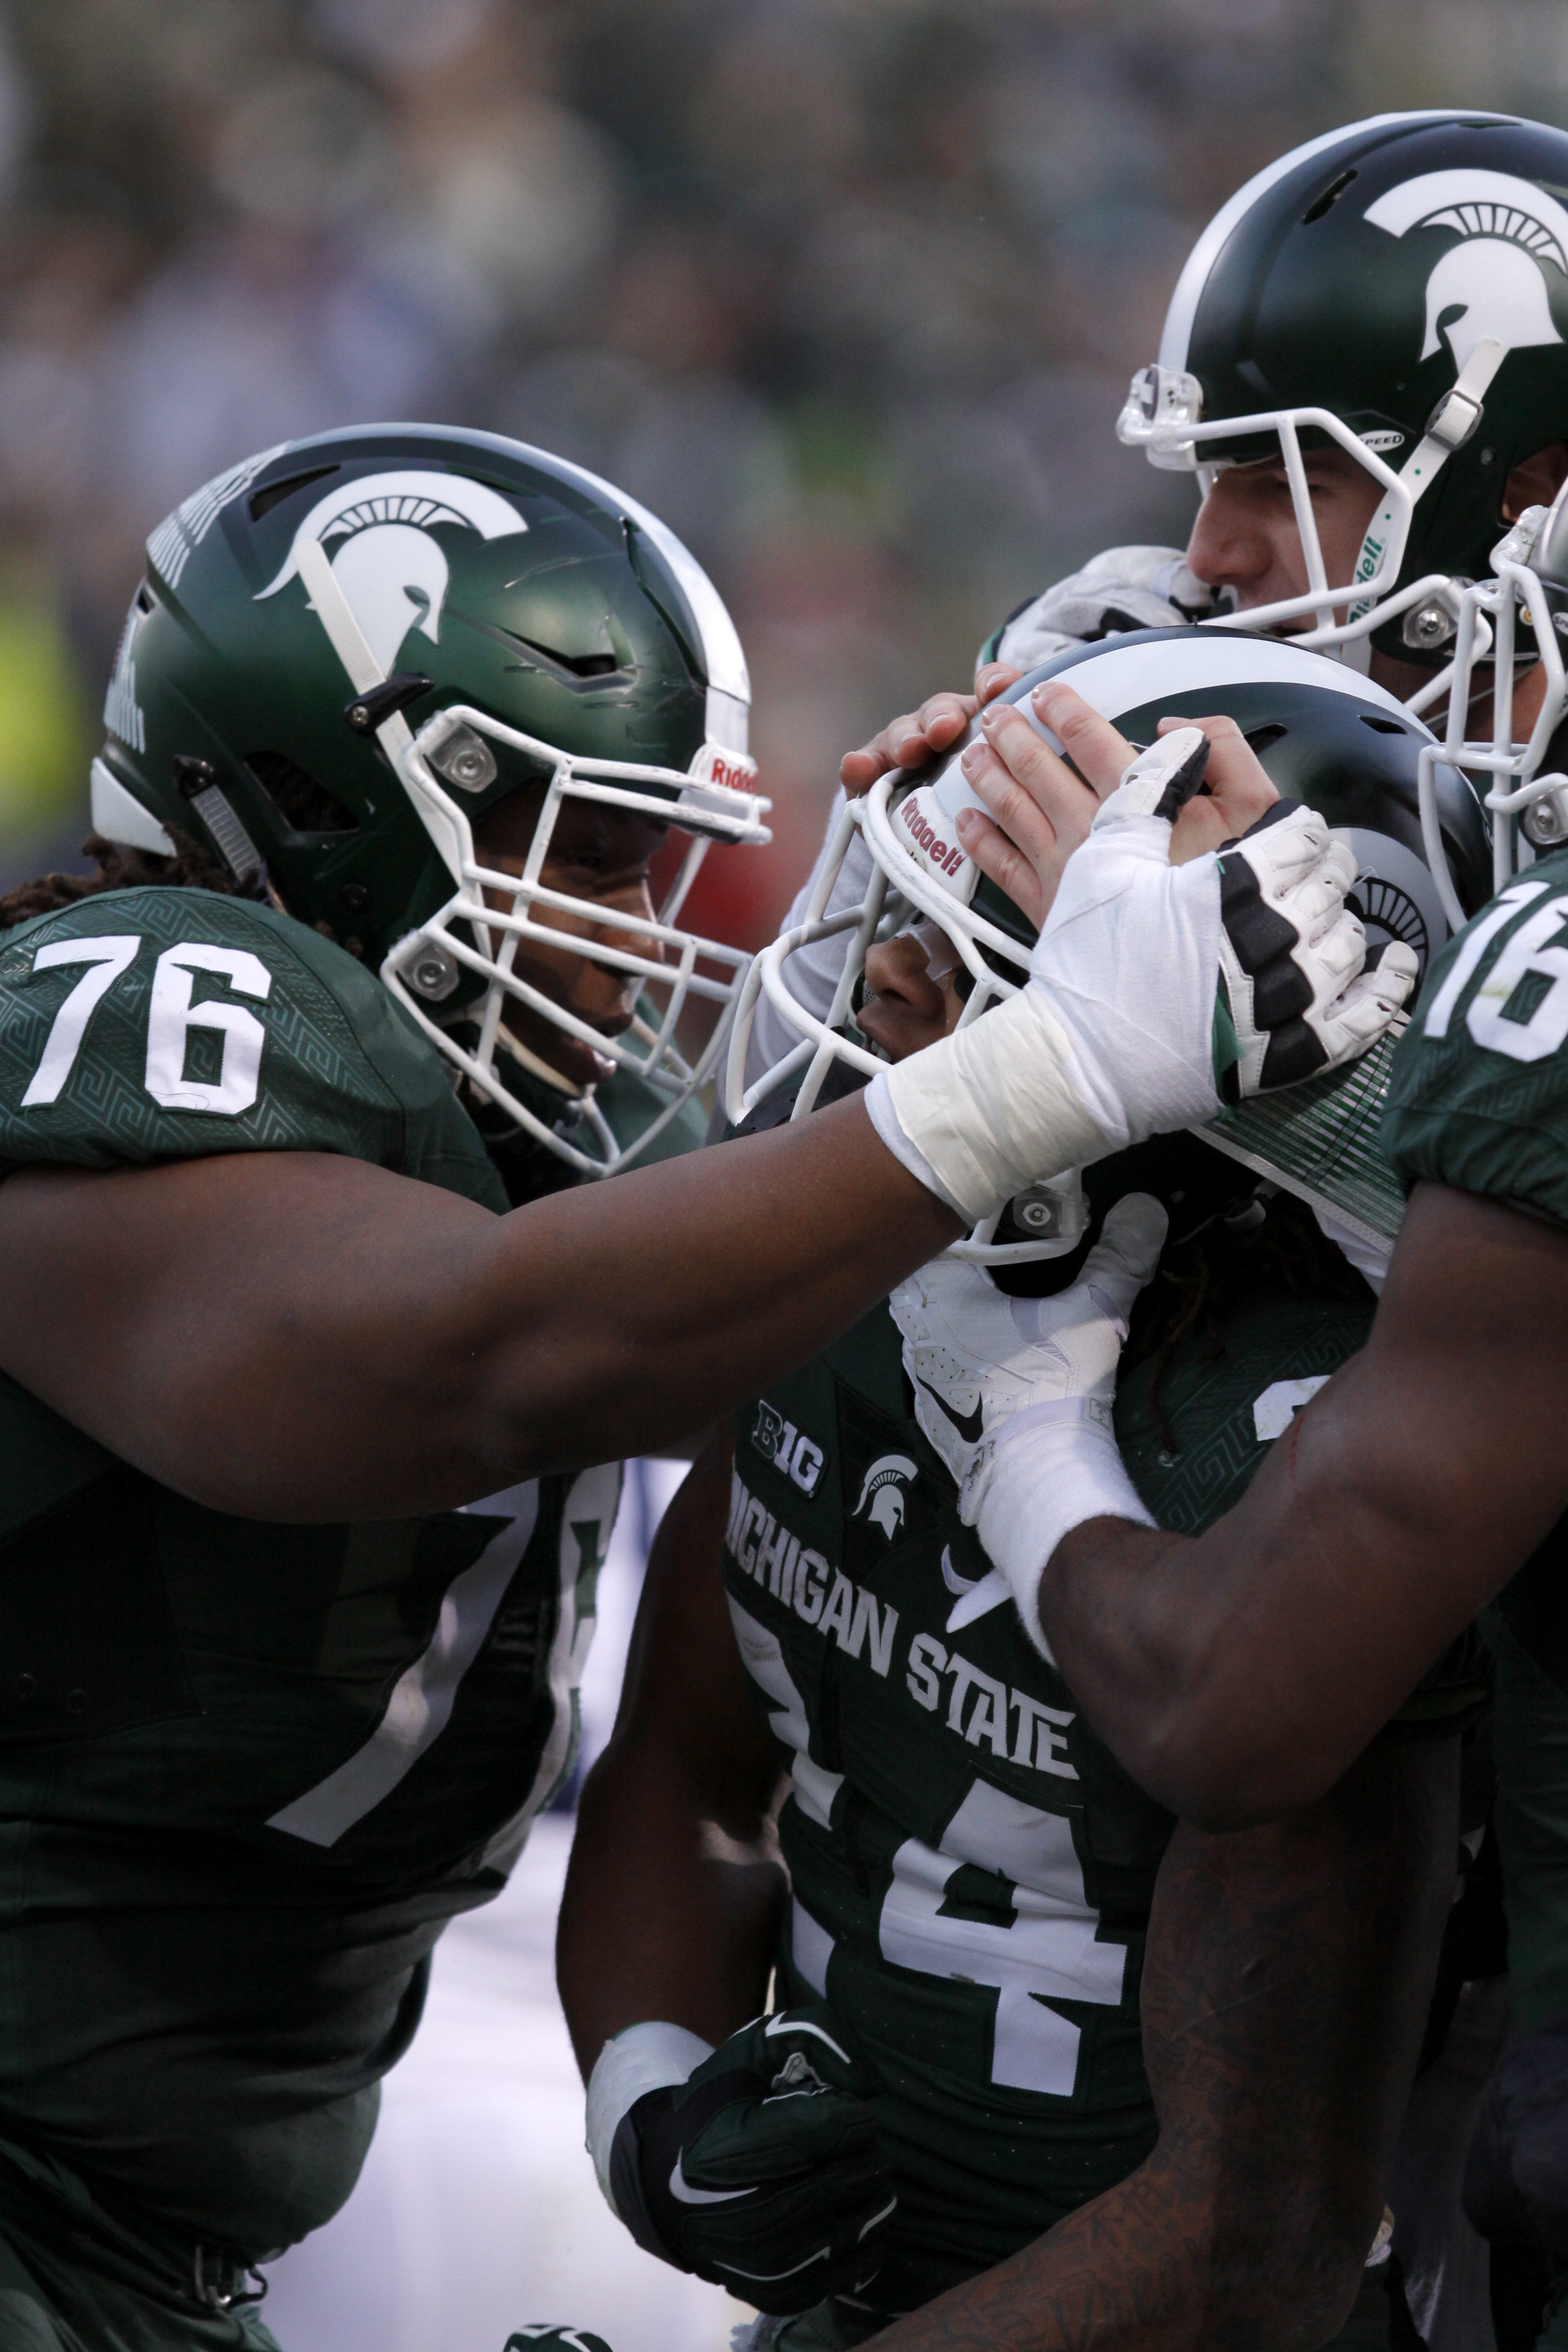 Michigan State running back Gerald Holmes, center, offensive lineman Donavon Clark (76) and quarterback Connor Cook, right, celebrate Holmes' rushing touchdown against Penn State during the second quarter of an NCAA college football game, Saturday, Nov. 2